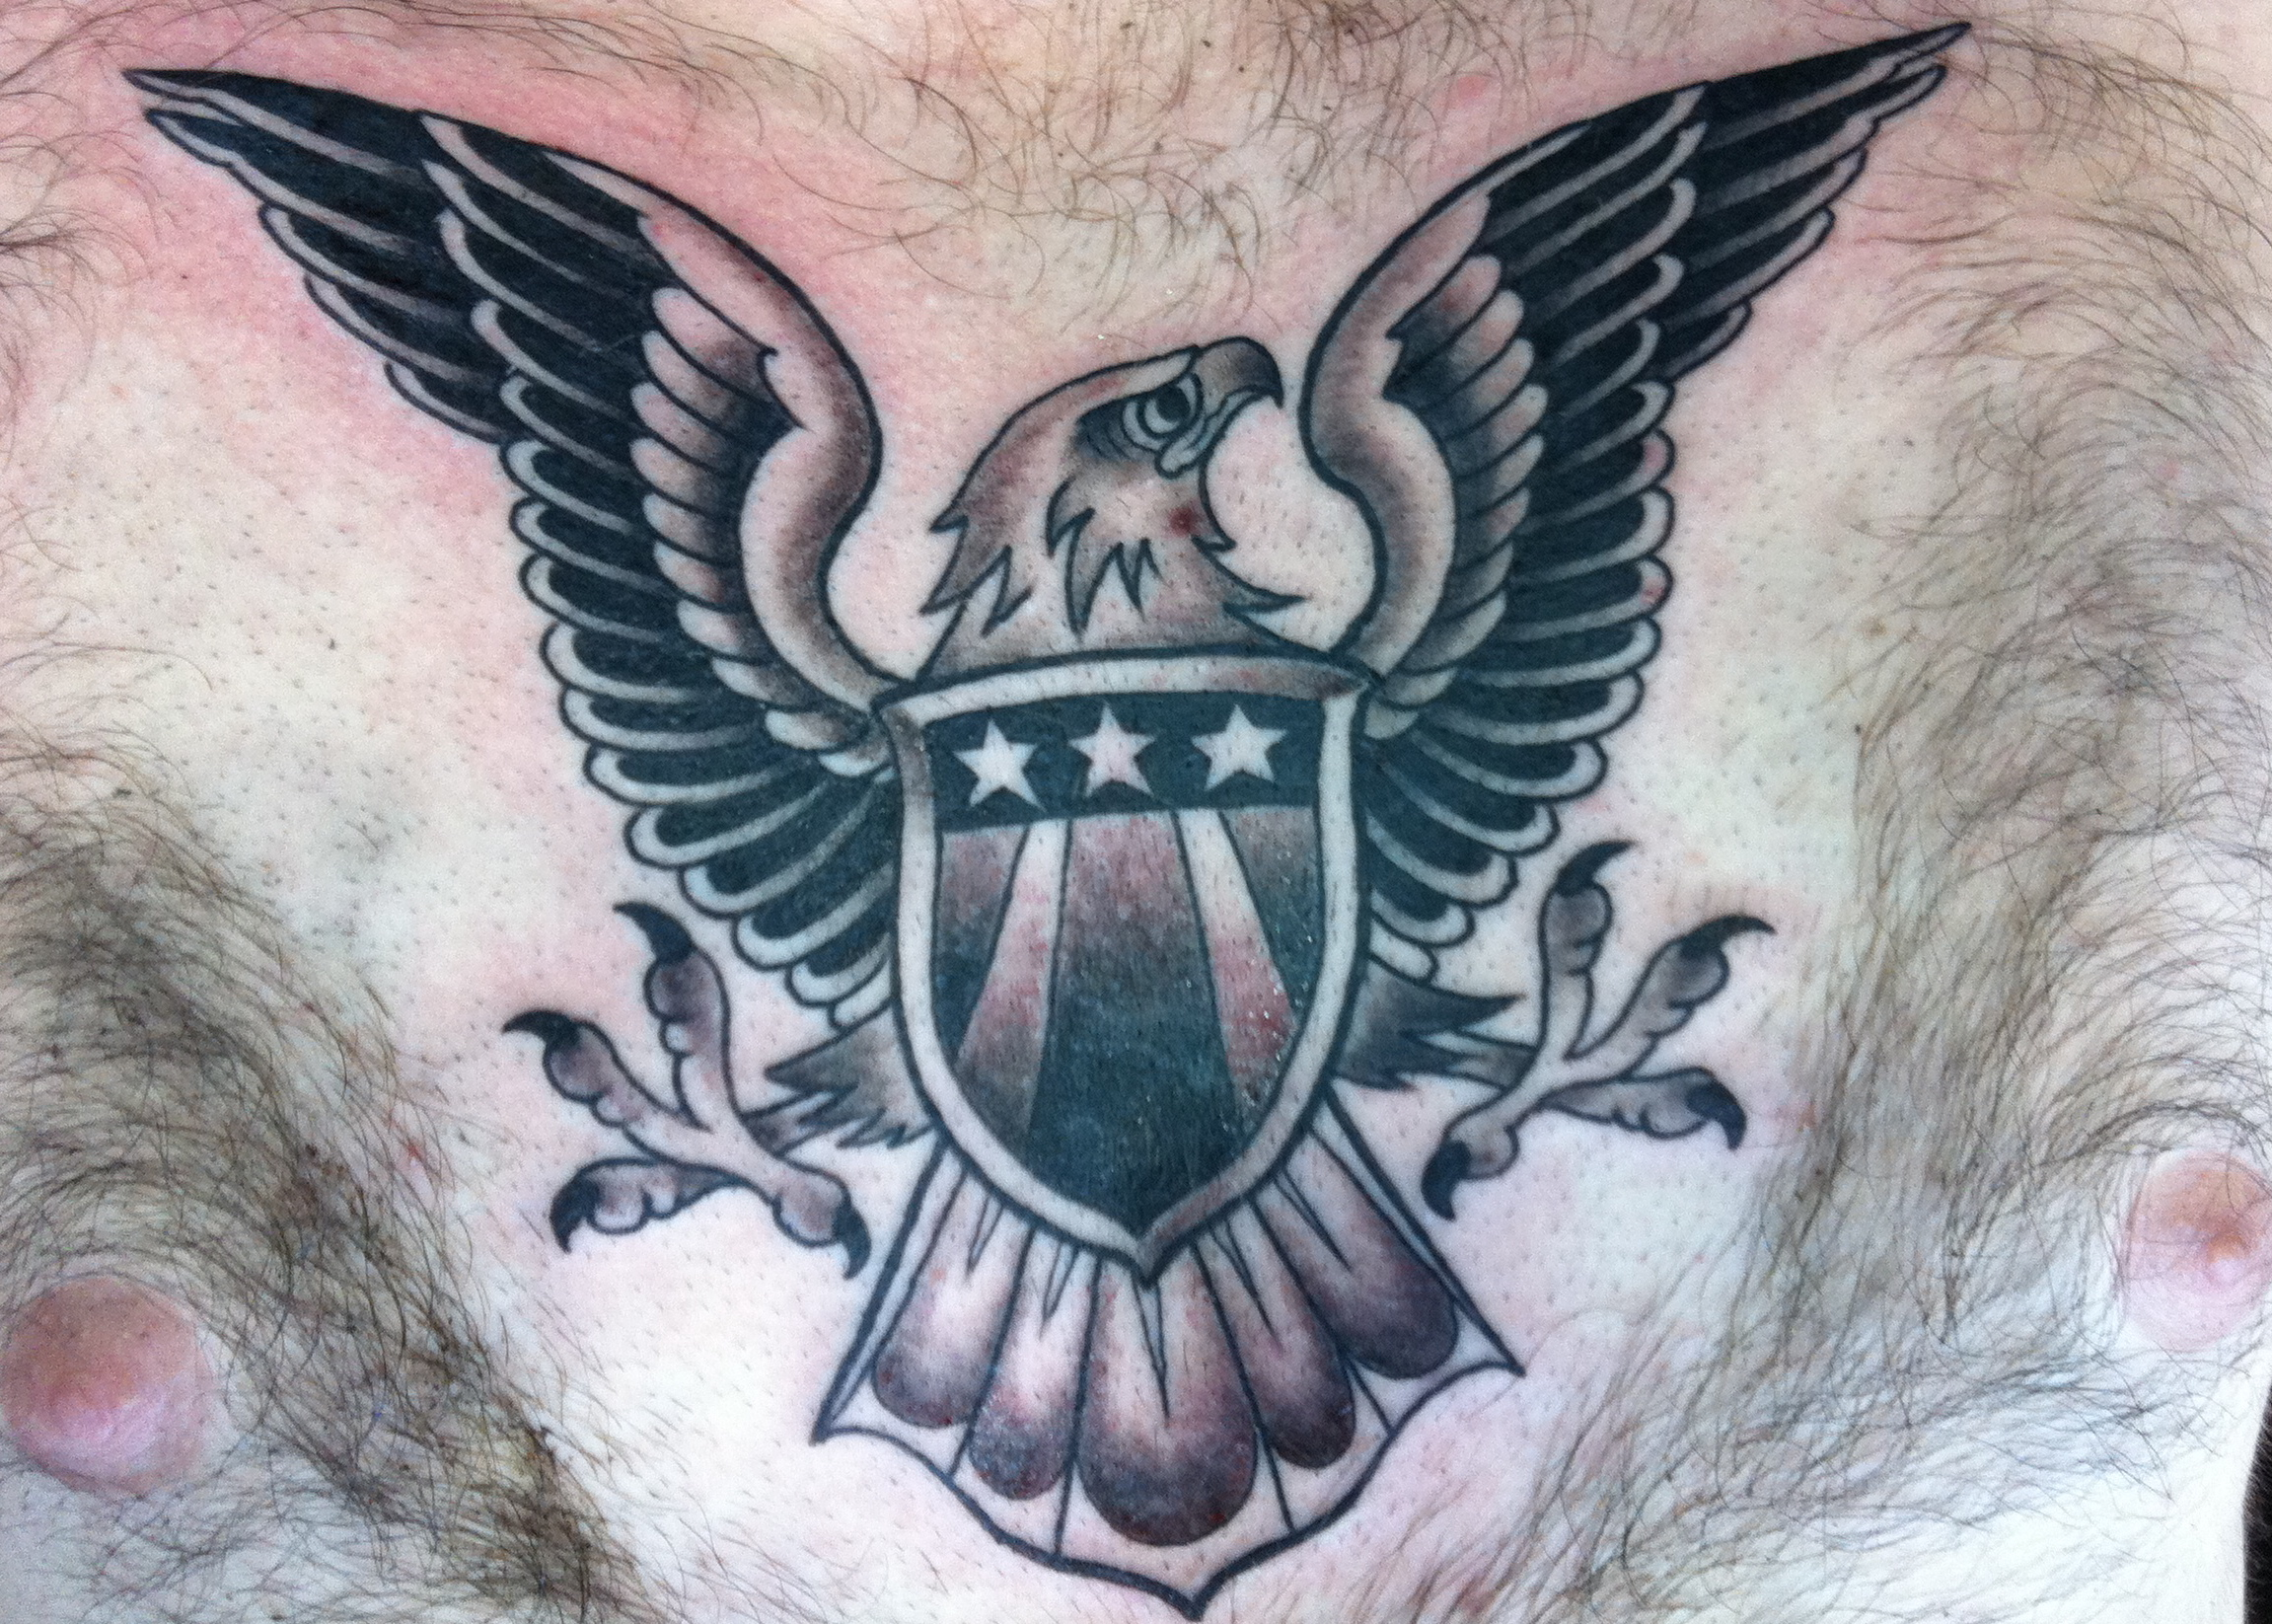 I tattooed this eagle at the